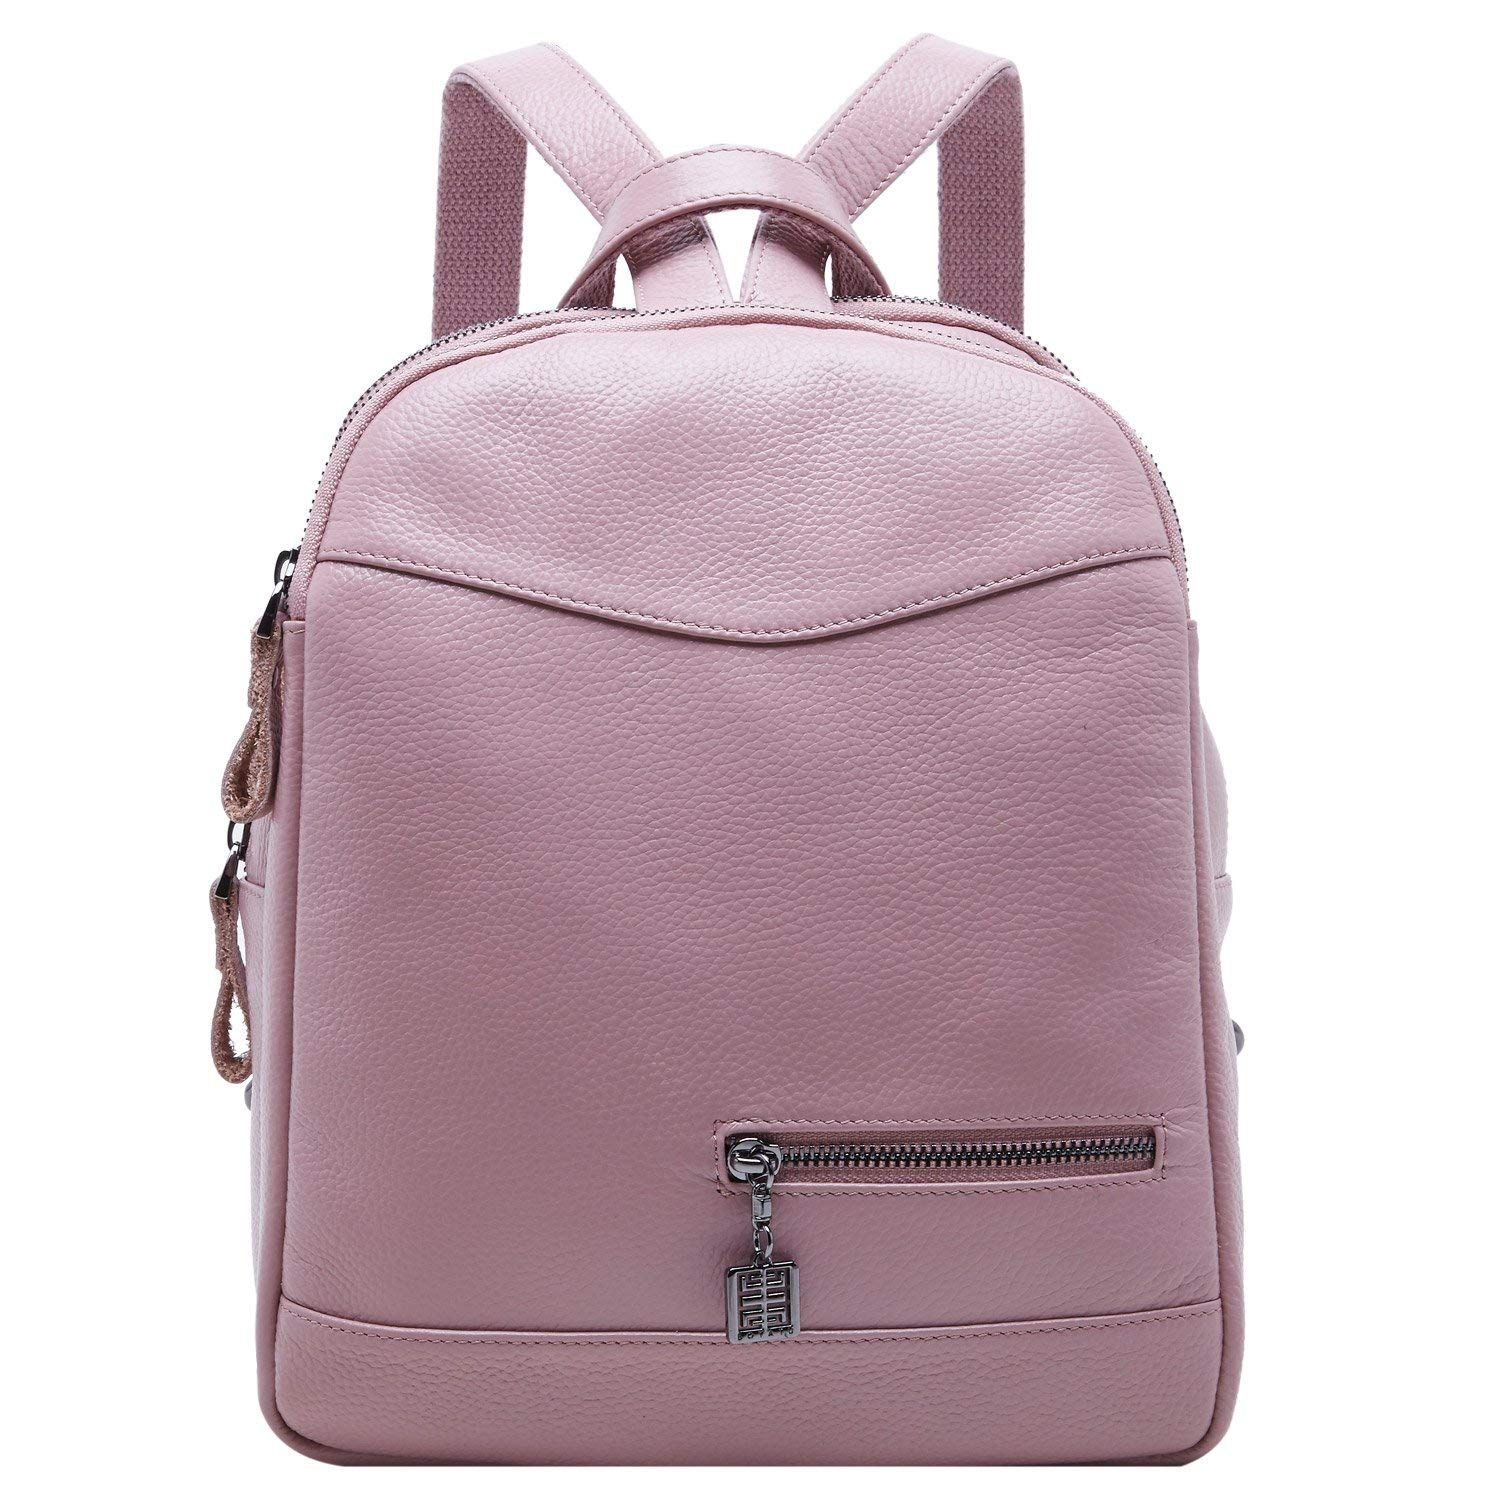 89e54f4cac BOYATU Genuine Leather Backpack Purse for Women School Bag Mini Travel  Rucksack (Pink)